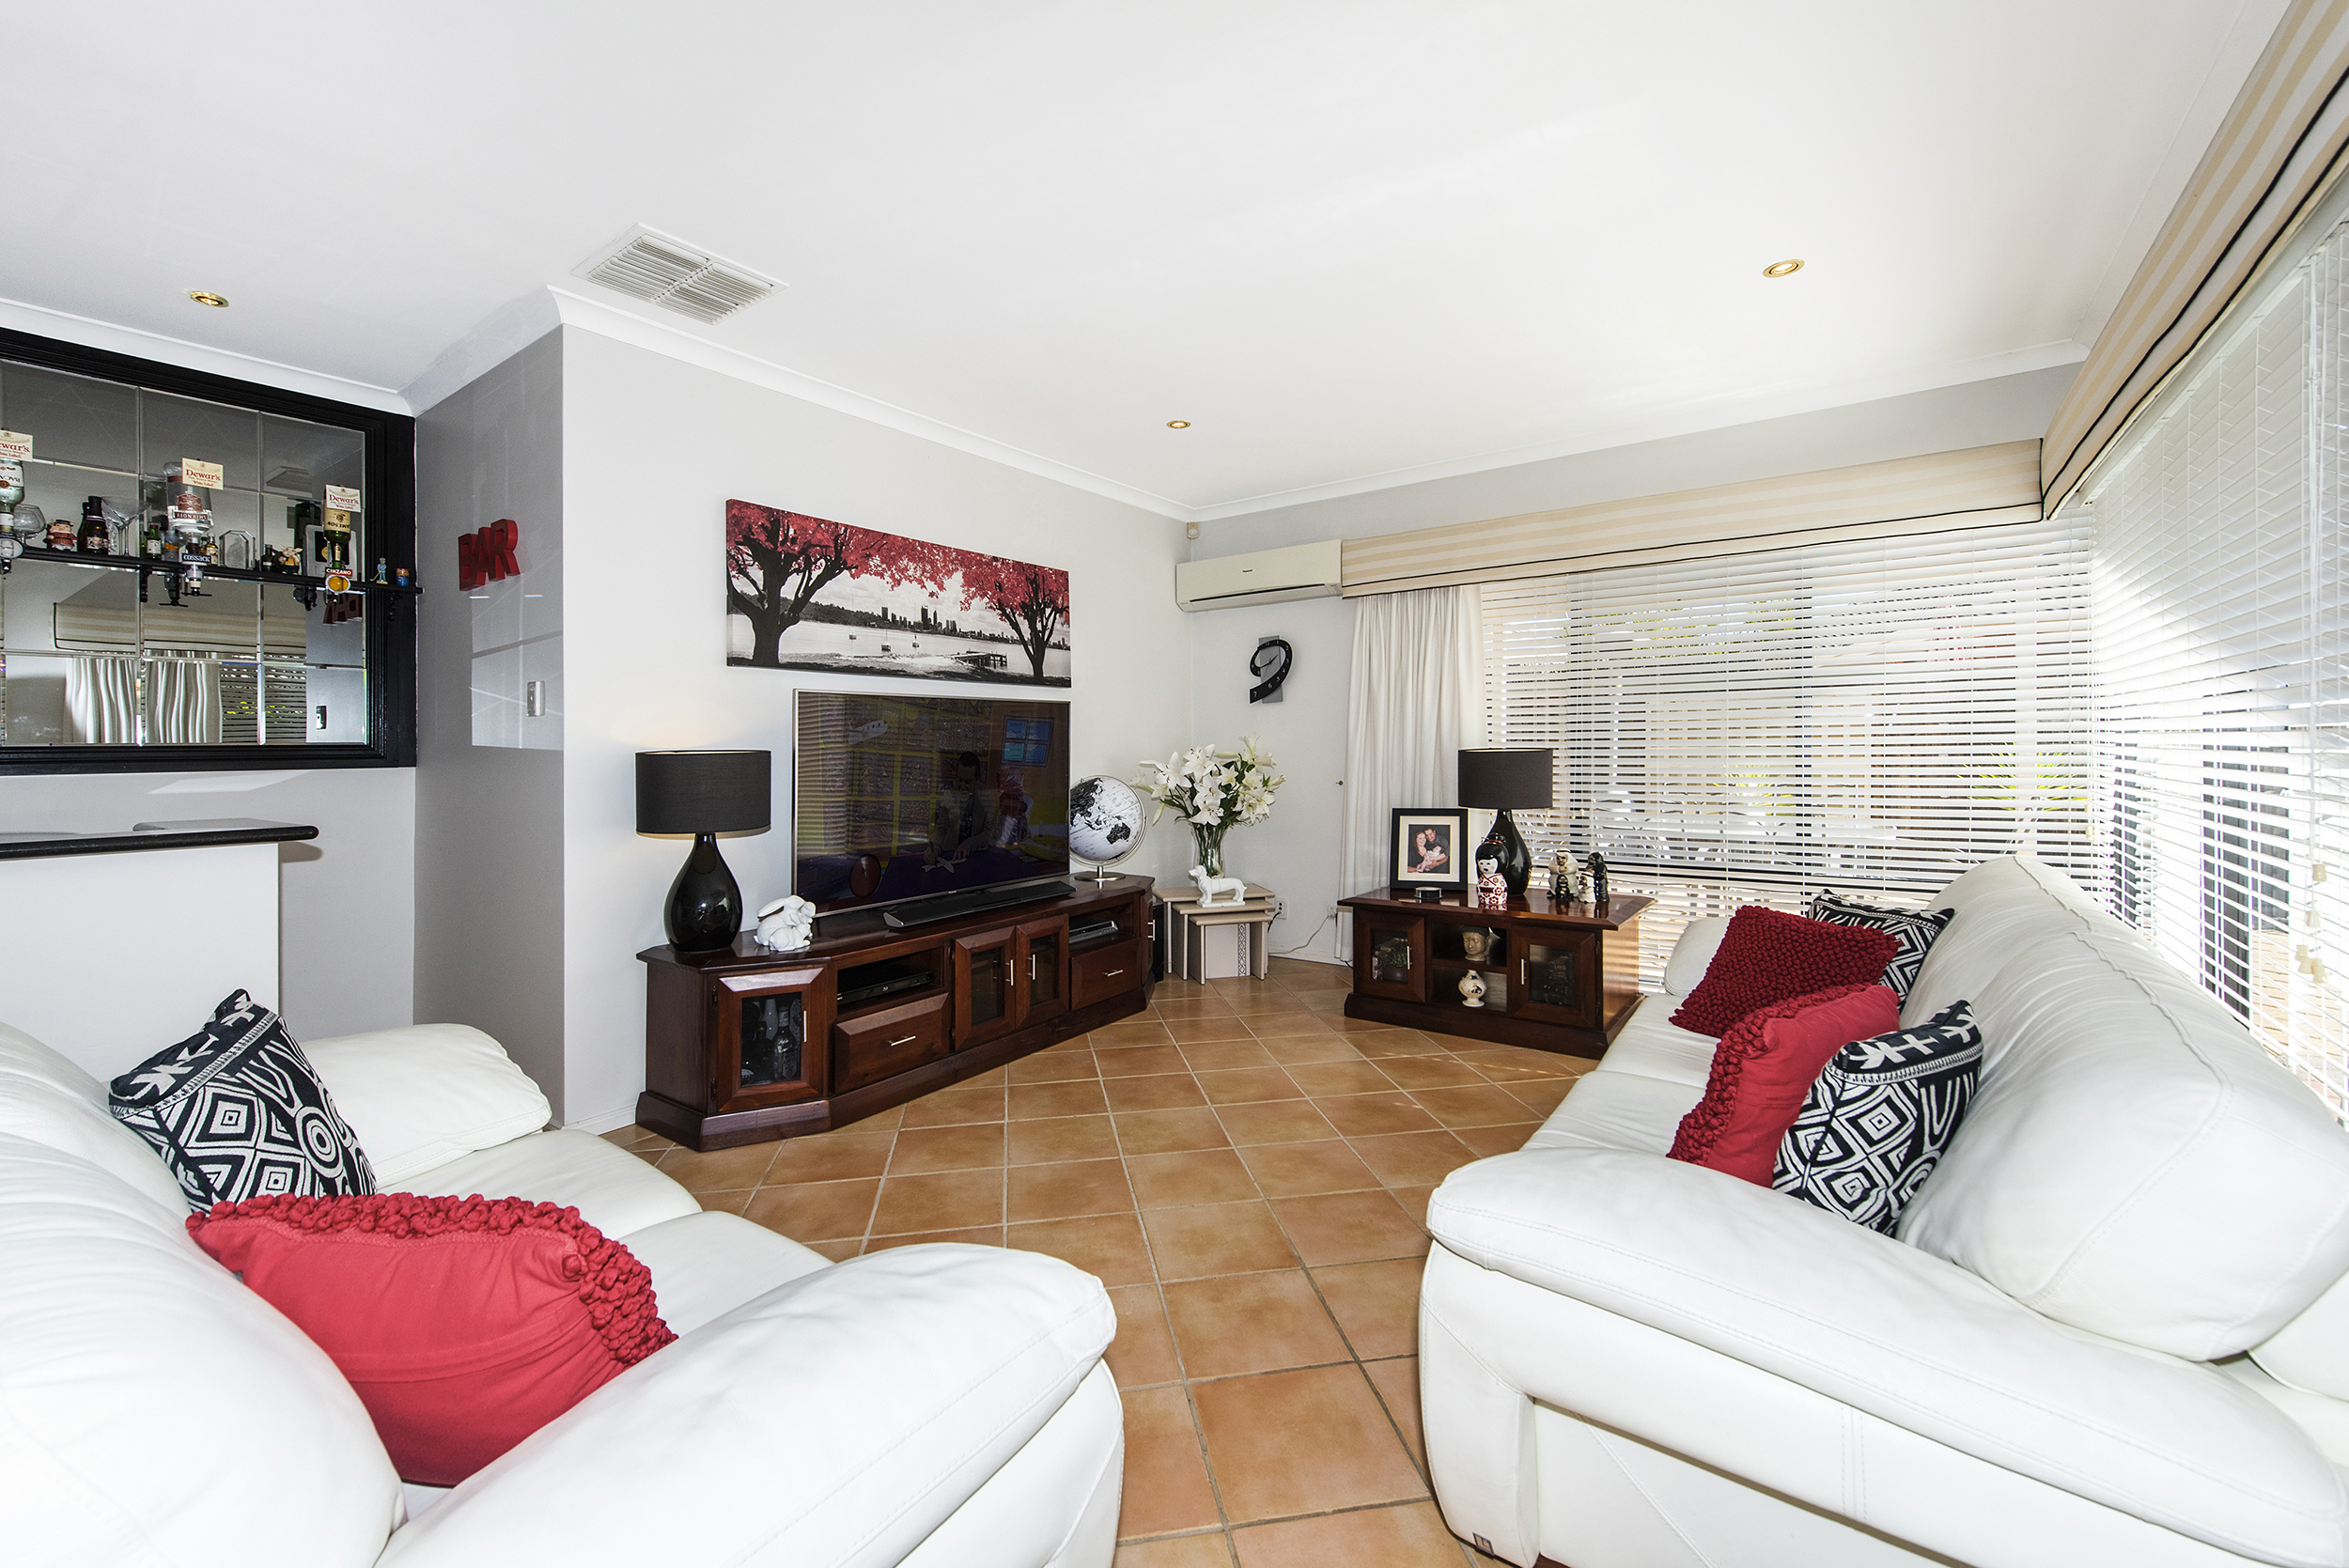 Property for sale in CANNING VALE, 55 Alexandria Boulevard : Attree Real Estate